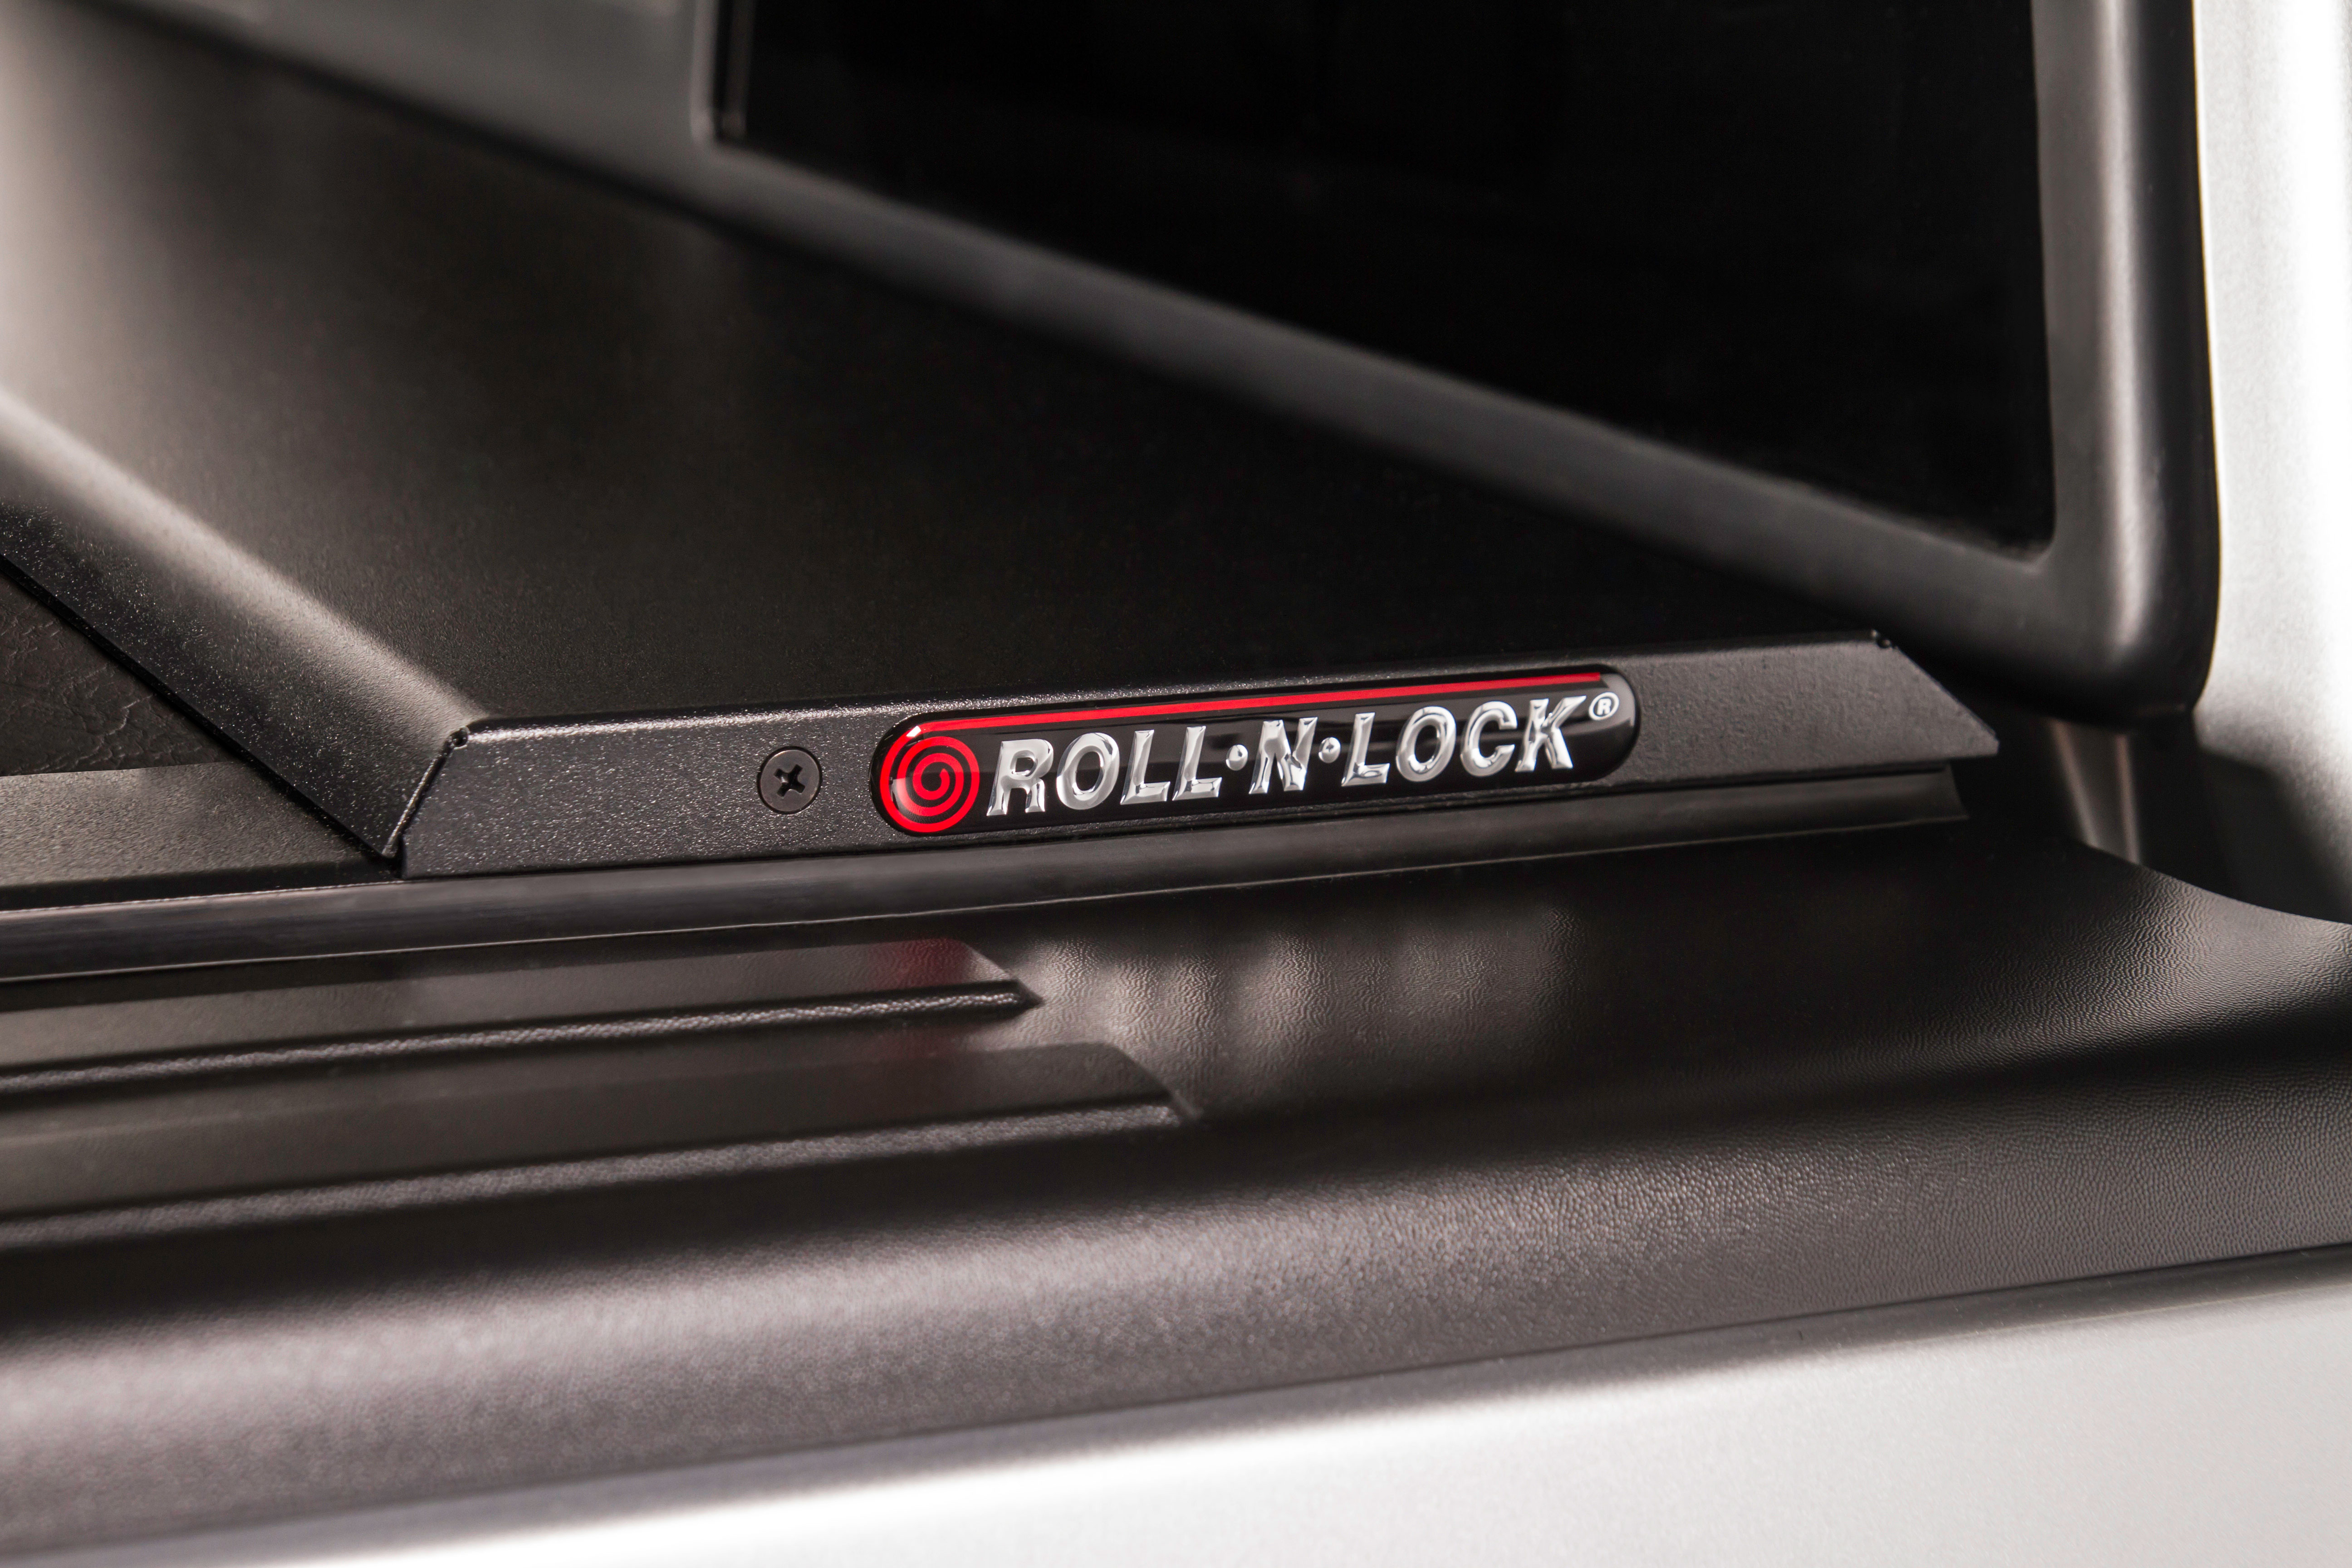 Roll n Lock has what you need to be safe out their